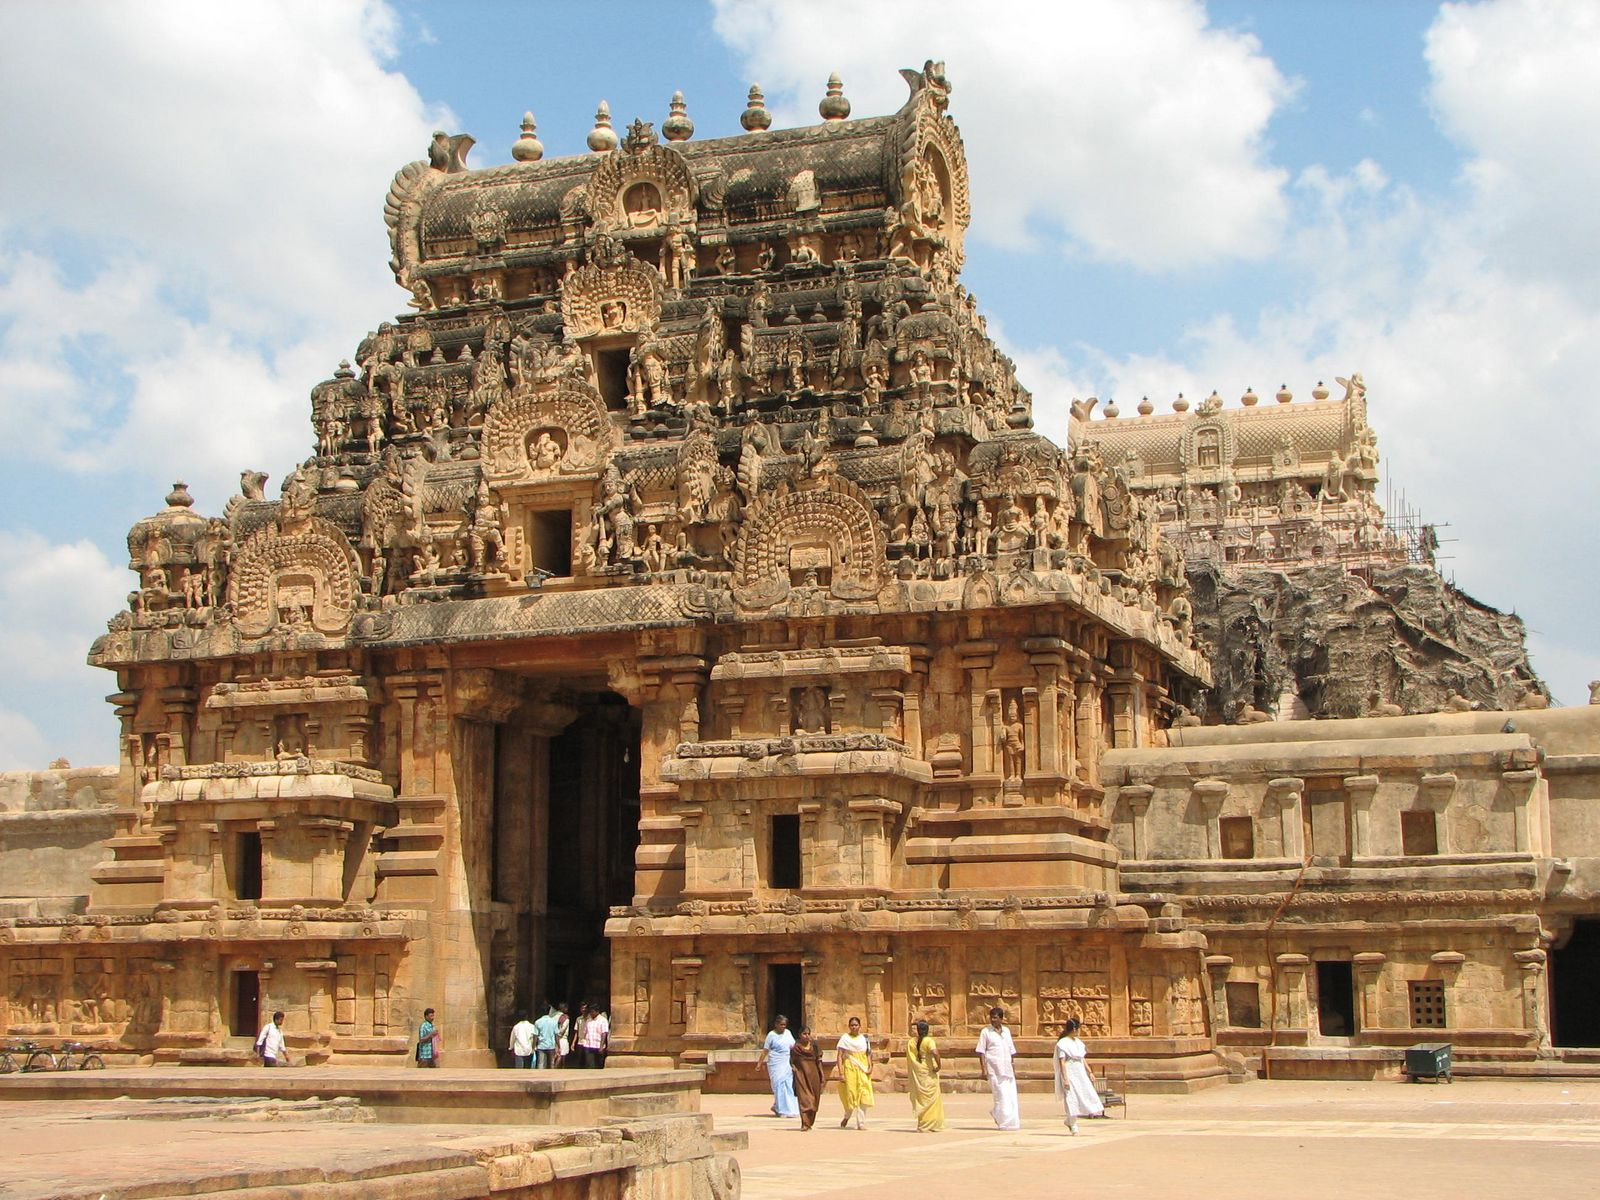 Tamil Nadu India  City new picture : Tour in India | Travel Tourism India: Visit India Tamil Nadu Photos ...